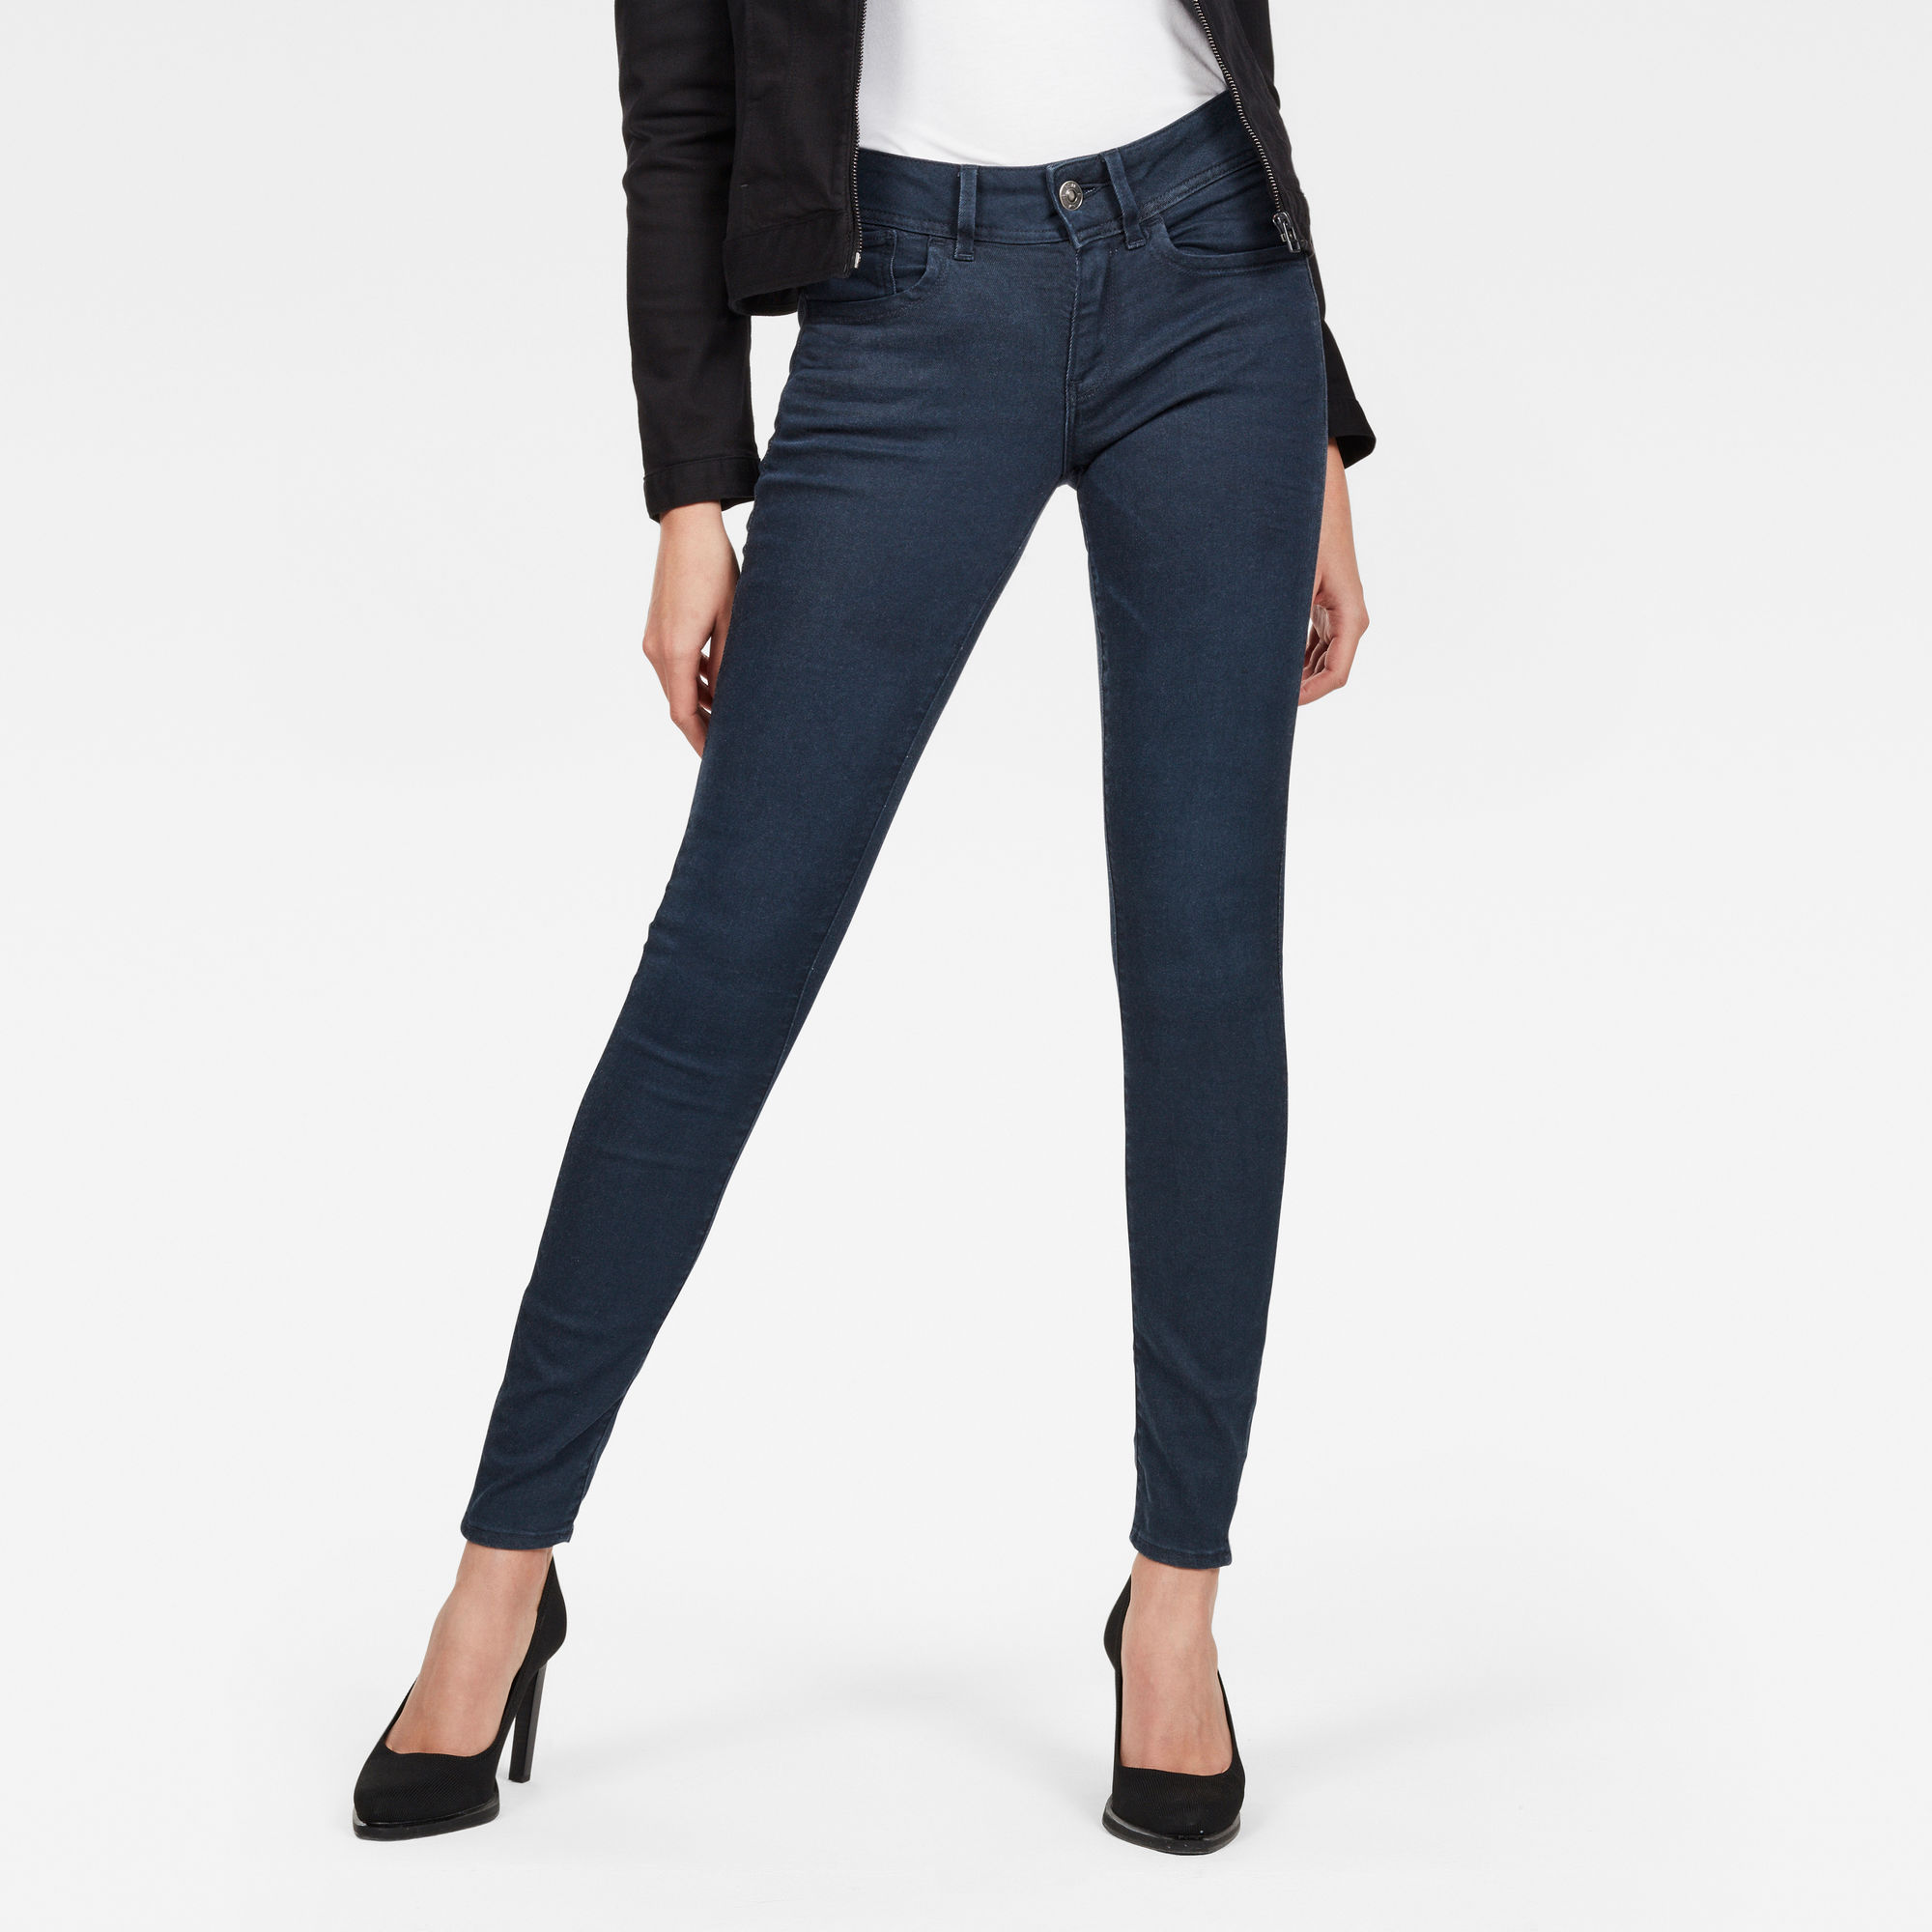 Image of G Star Raw Lynn Mid Waist Skinny Colored Jeans